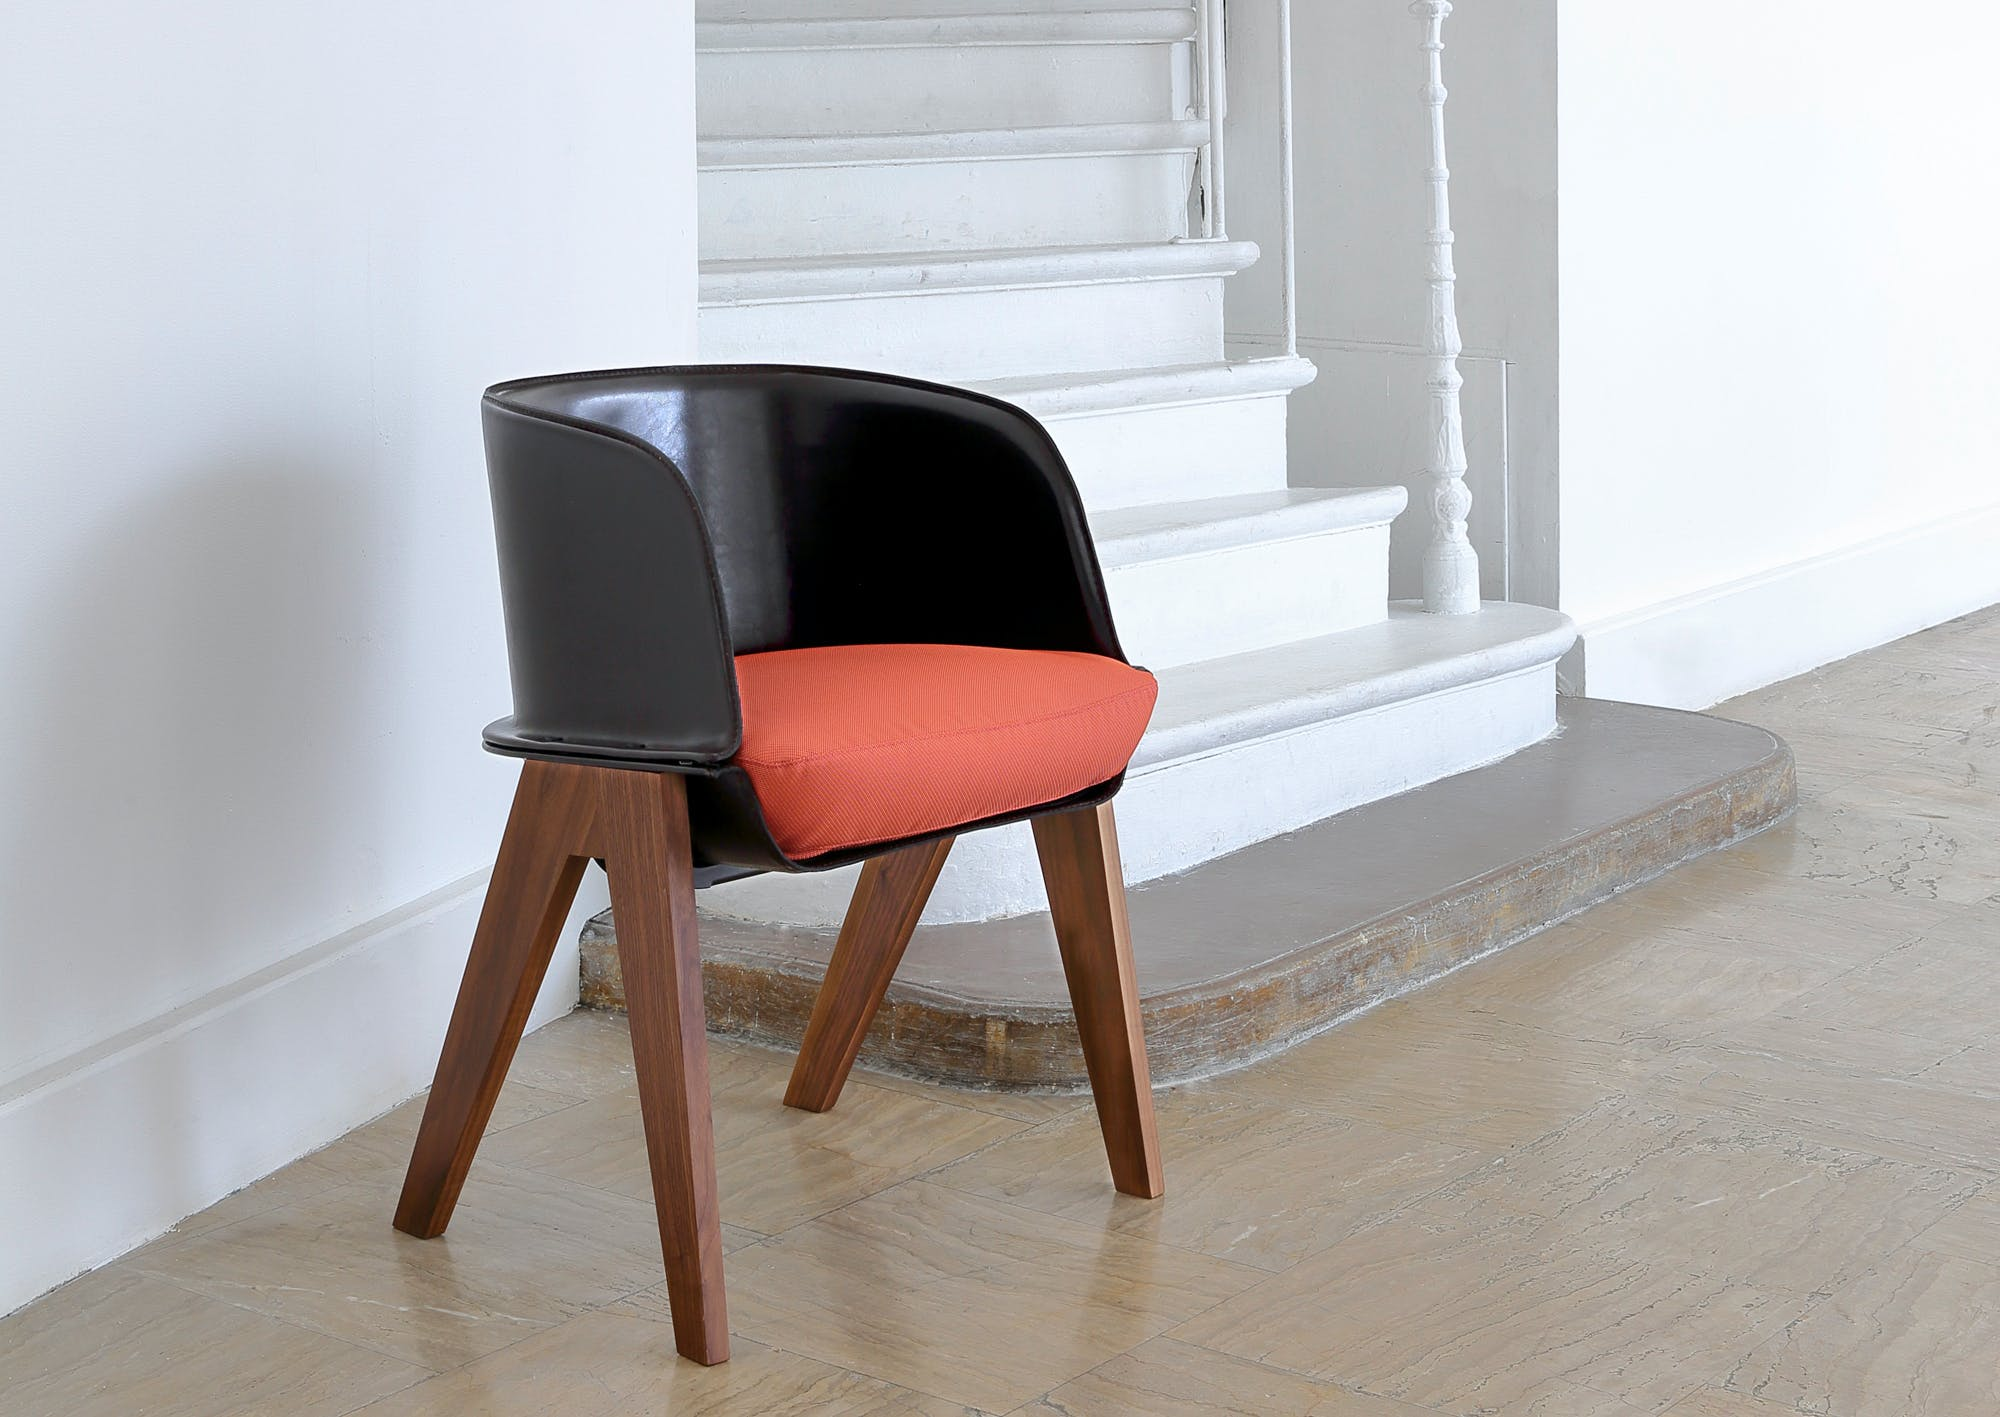 LUCIA by PATRICIA URQUIOLA | COEDITION The Lucia Chair, designed in 2014 by the venerable Patricia Urquiola, boasts a unique form with a black or brown leather shell, an upholstered seat, and walnut or black ash legs.